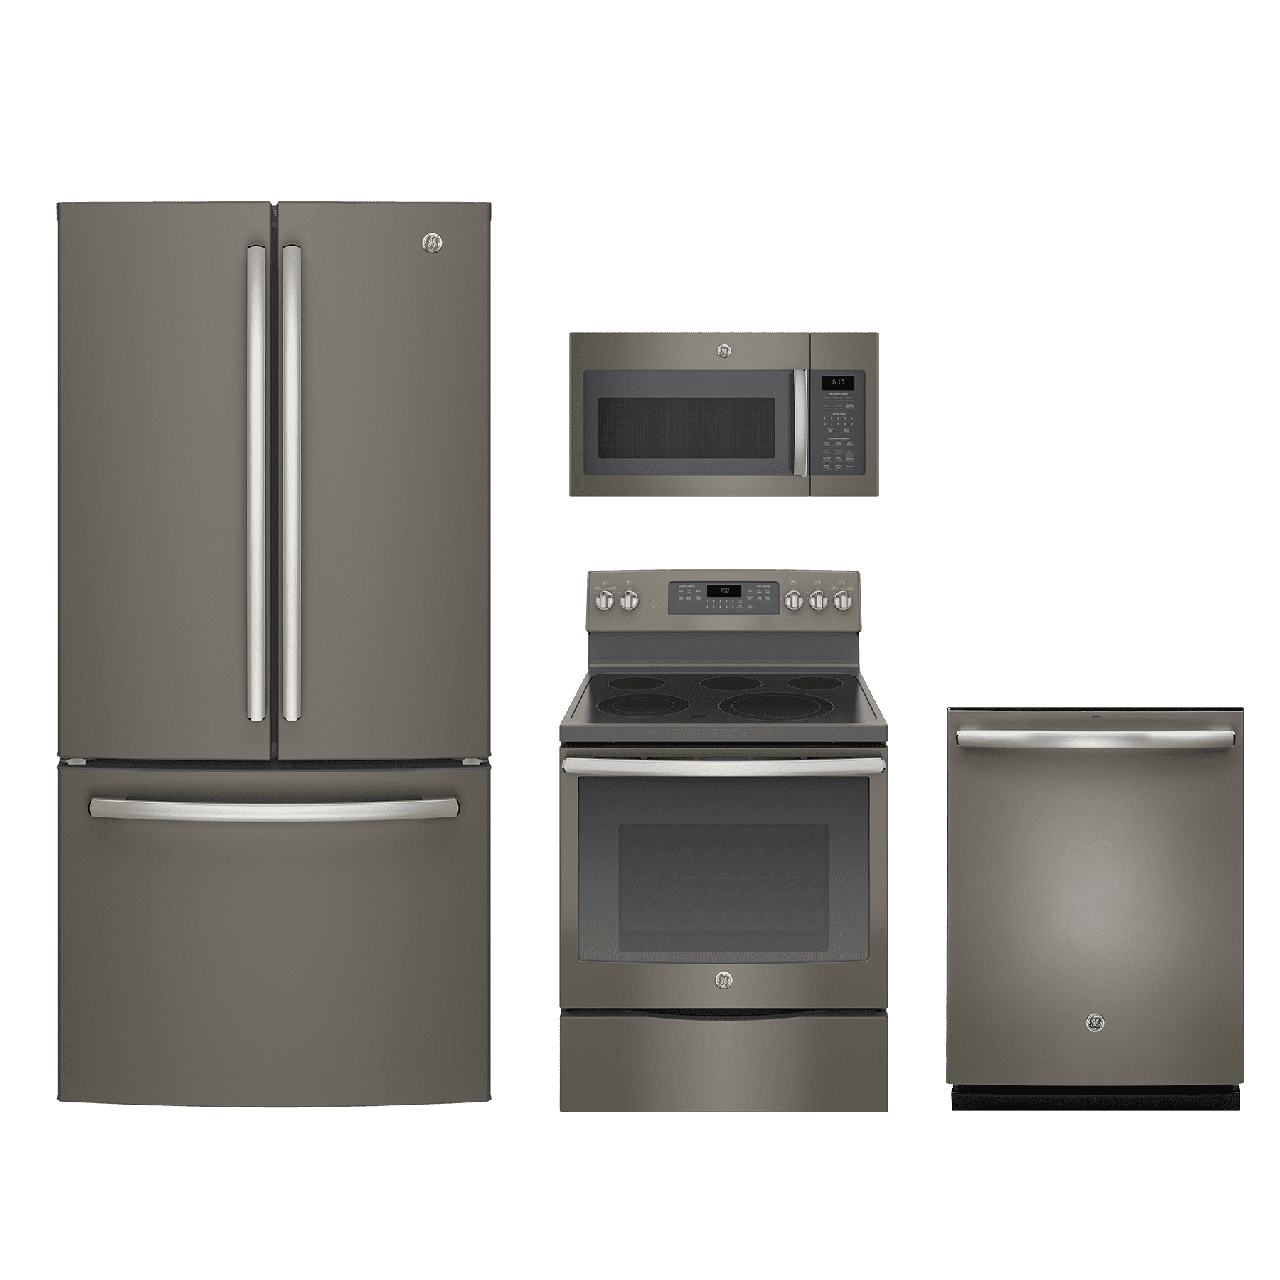 kitchen stools for gas packages ovens orange stove parts appliance tops counter appliances small deals cooking home sale stoves used depot cool splendid top range lowes electric refrigerators